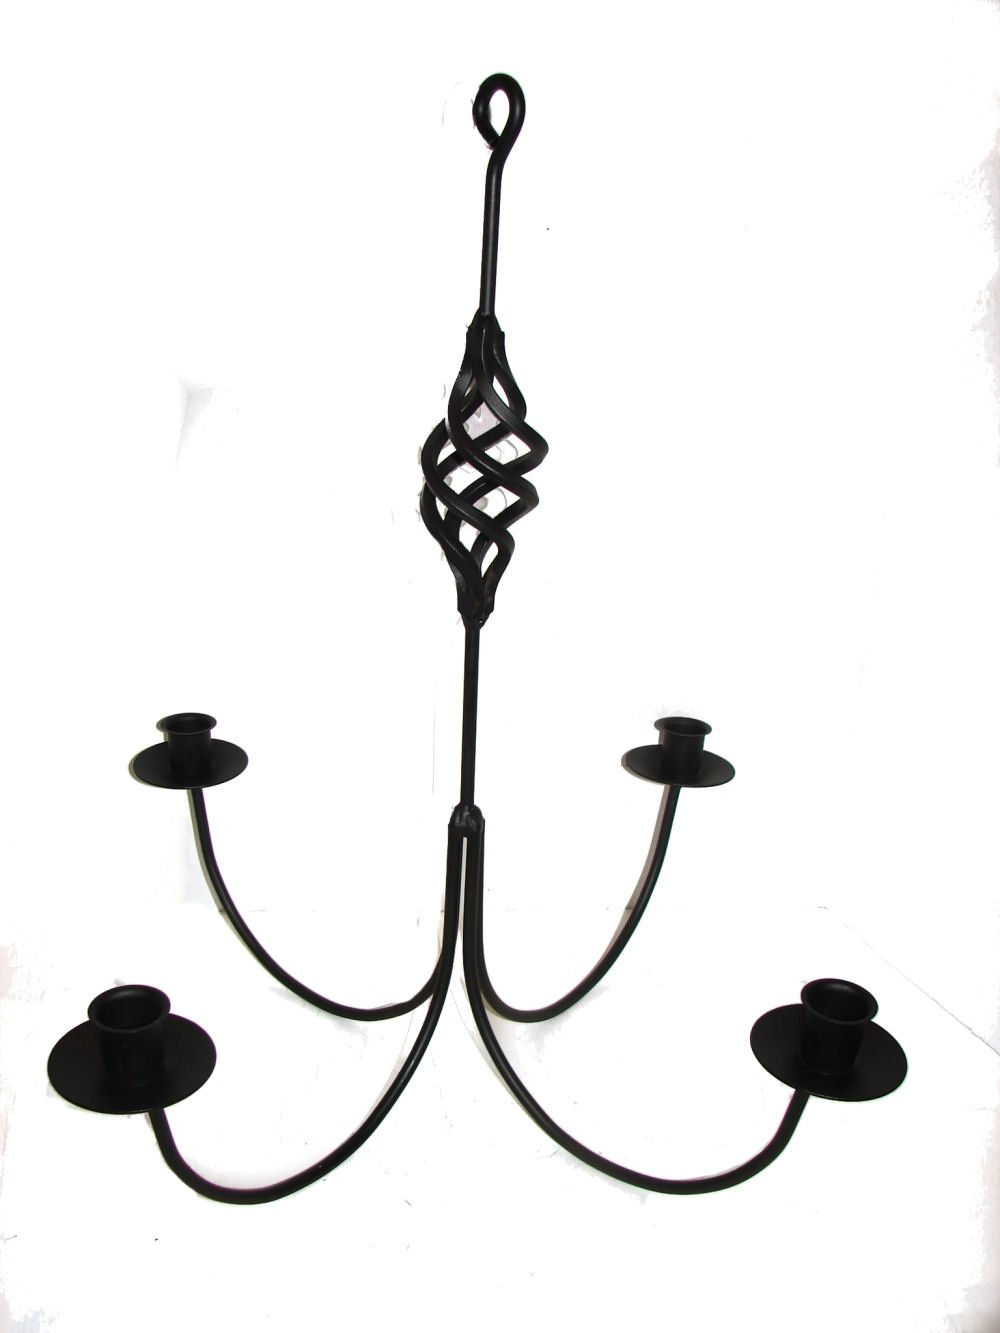 Wrought iron 4 arm candle chandelier w birdcage center